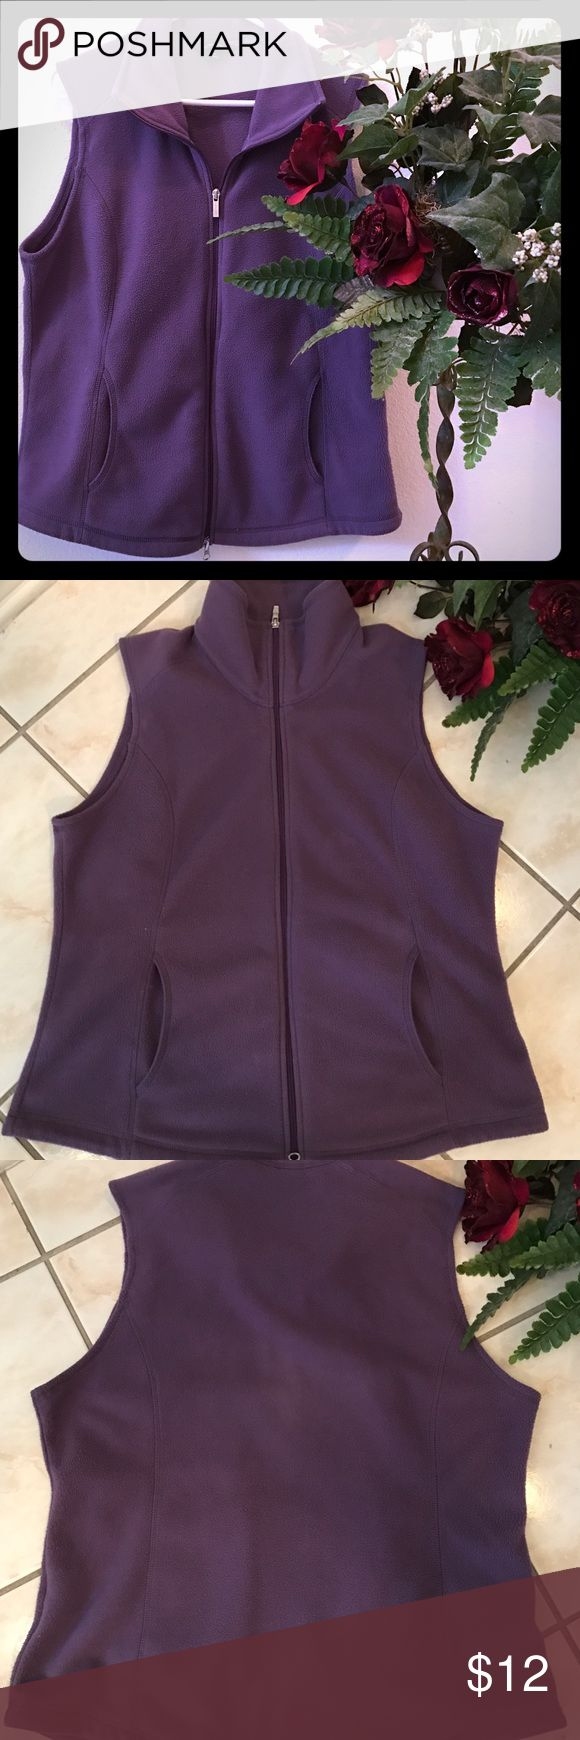 Lands' End Purple Full Zip Mock Collar Vest Women's Lands' End Purple Fleece Vest with two pockets, pre-owned but in great condition, size: Large, perfect for chilly wear over a long sleeve top or sweater Lands' End Jackets & Coats Vests